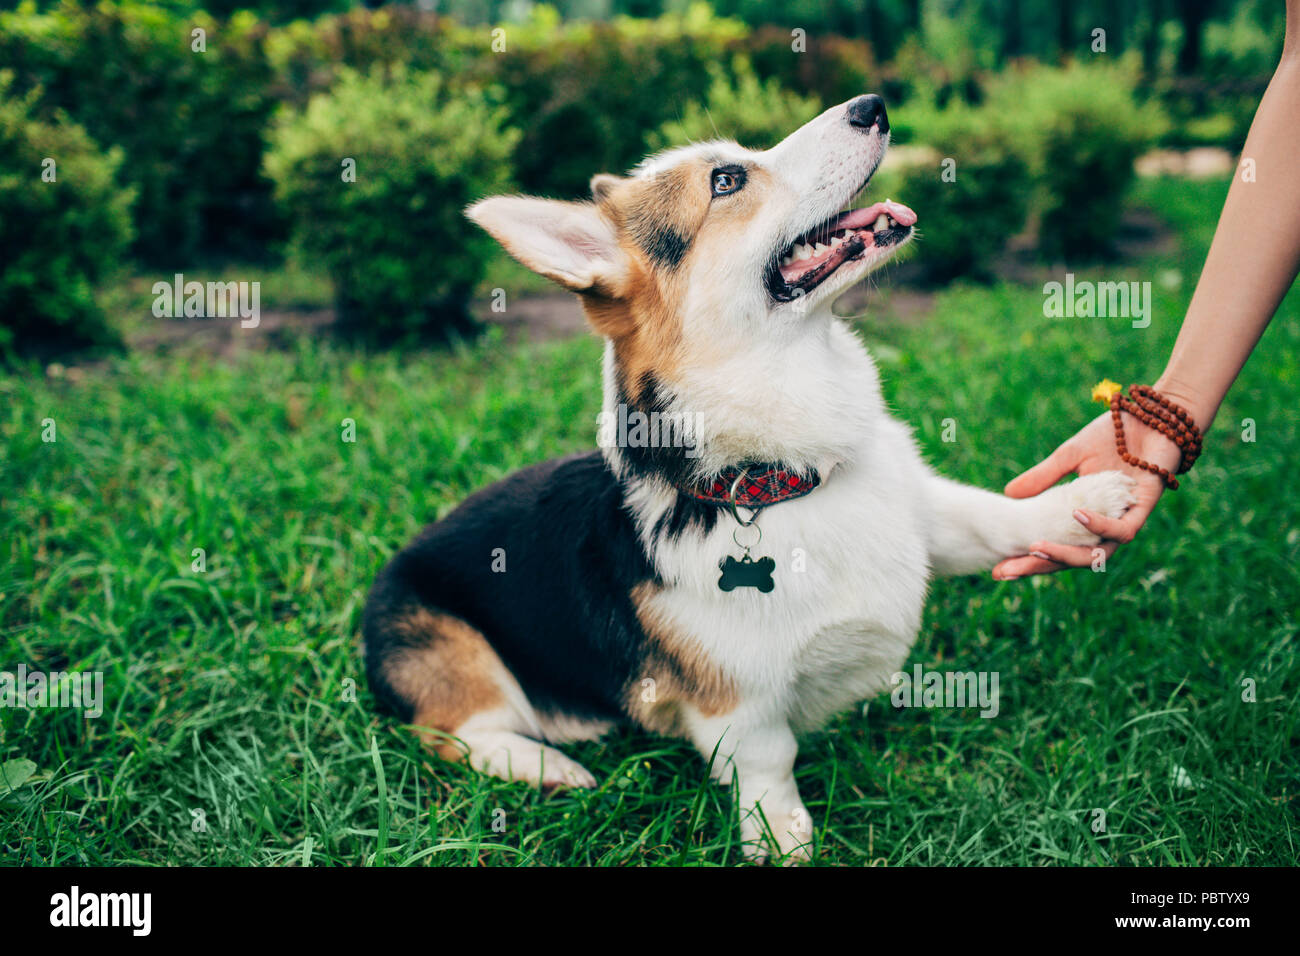 welsh corgi dog giving paw her owner, human hand and dog paw. - Stock Image